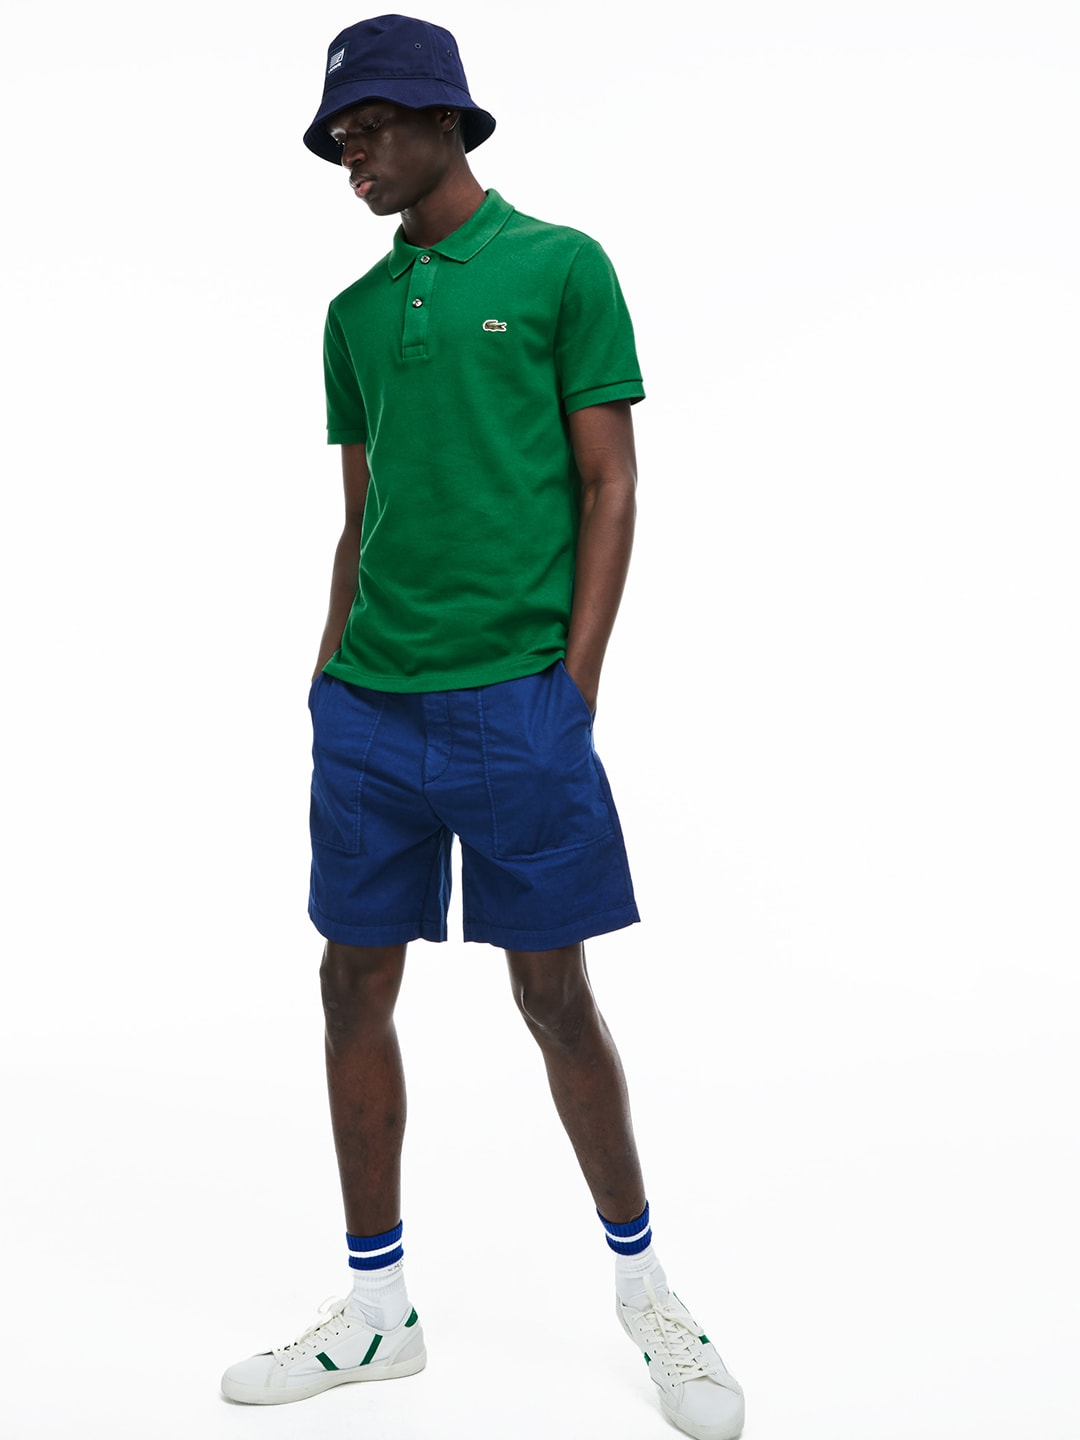 f964ec07b Lacoste - Buy Clothing   Accessories from Lacoste Store